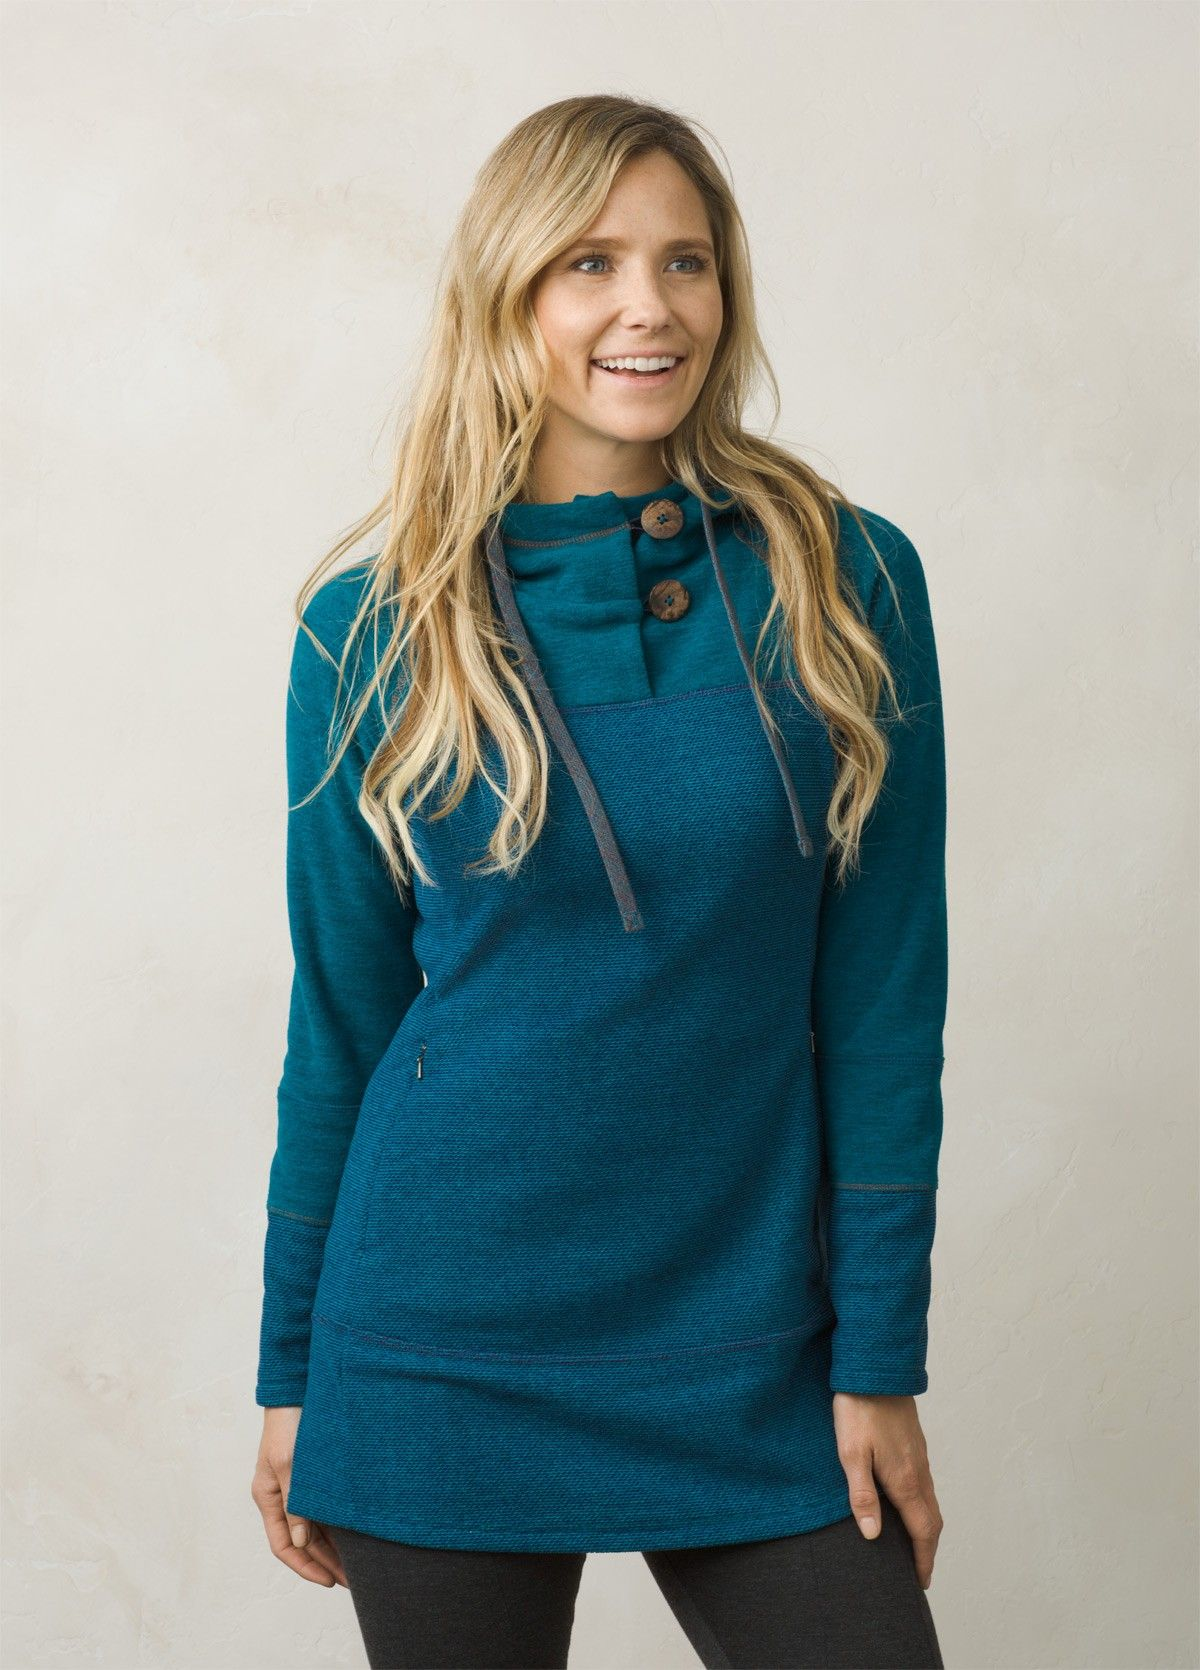 I love the prAna Cate Tunic! Check it out and more at www.prAna